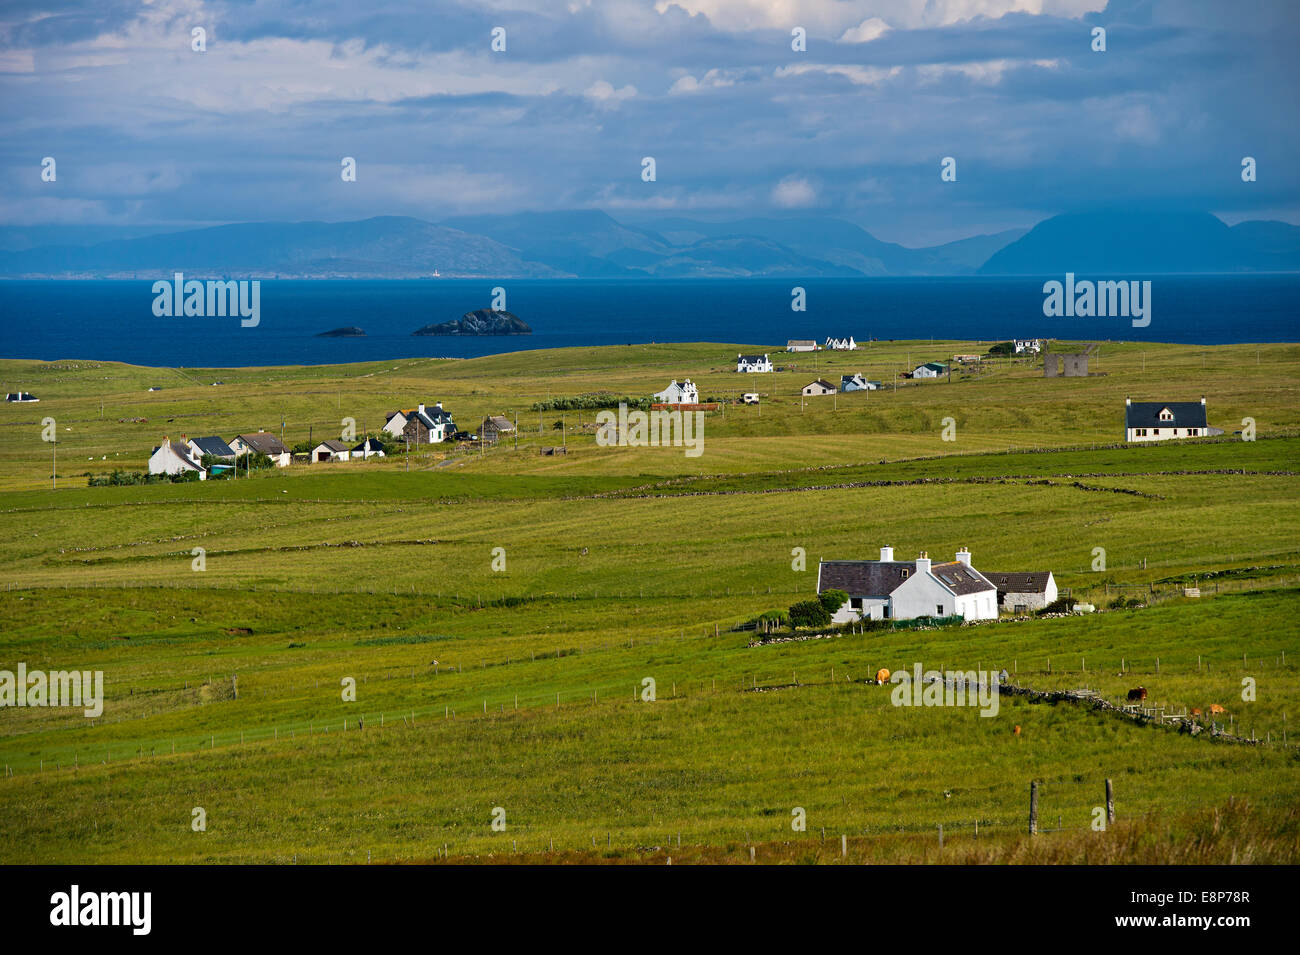 Landscape near Bornesketaig, Isle of Skye, Inner Hebrides, Scotland, United Kingdom - Stock Image